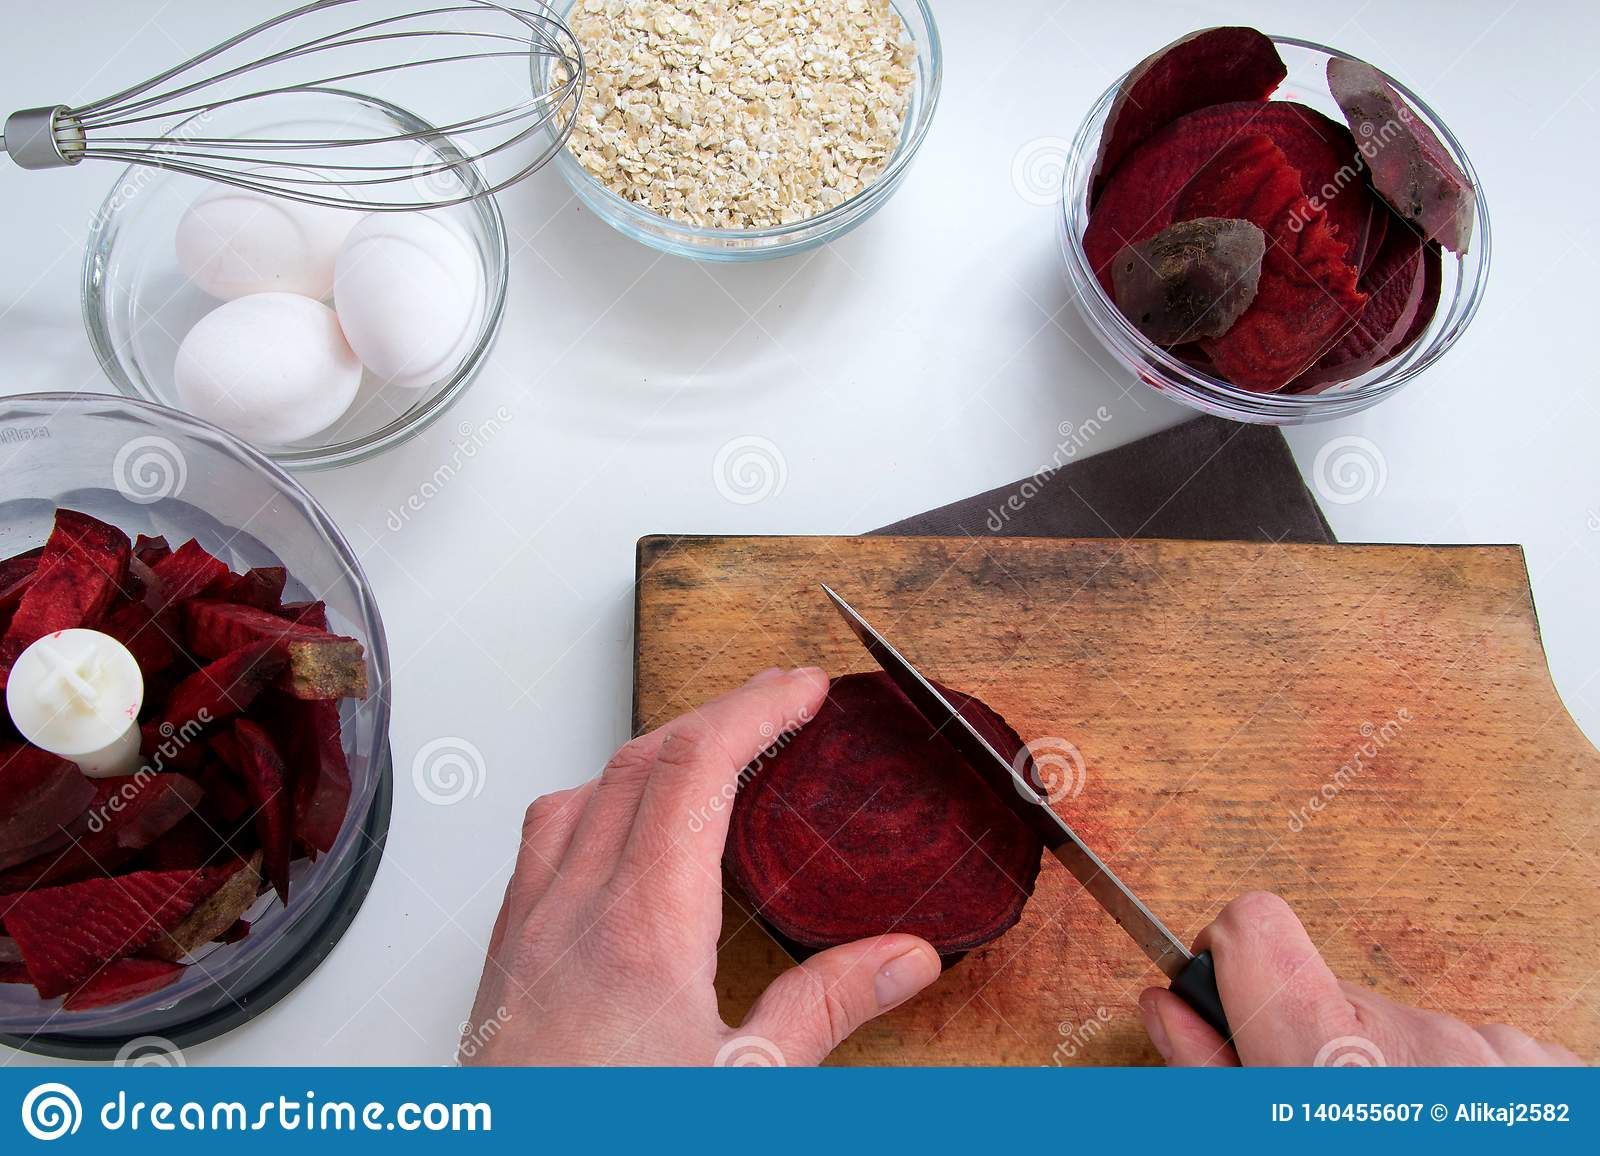 Top view of woman hands cooking healthy dessert with red beet roots, oats and eggs